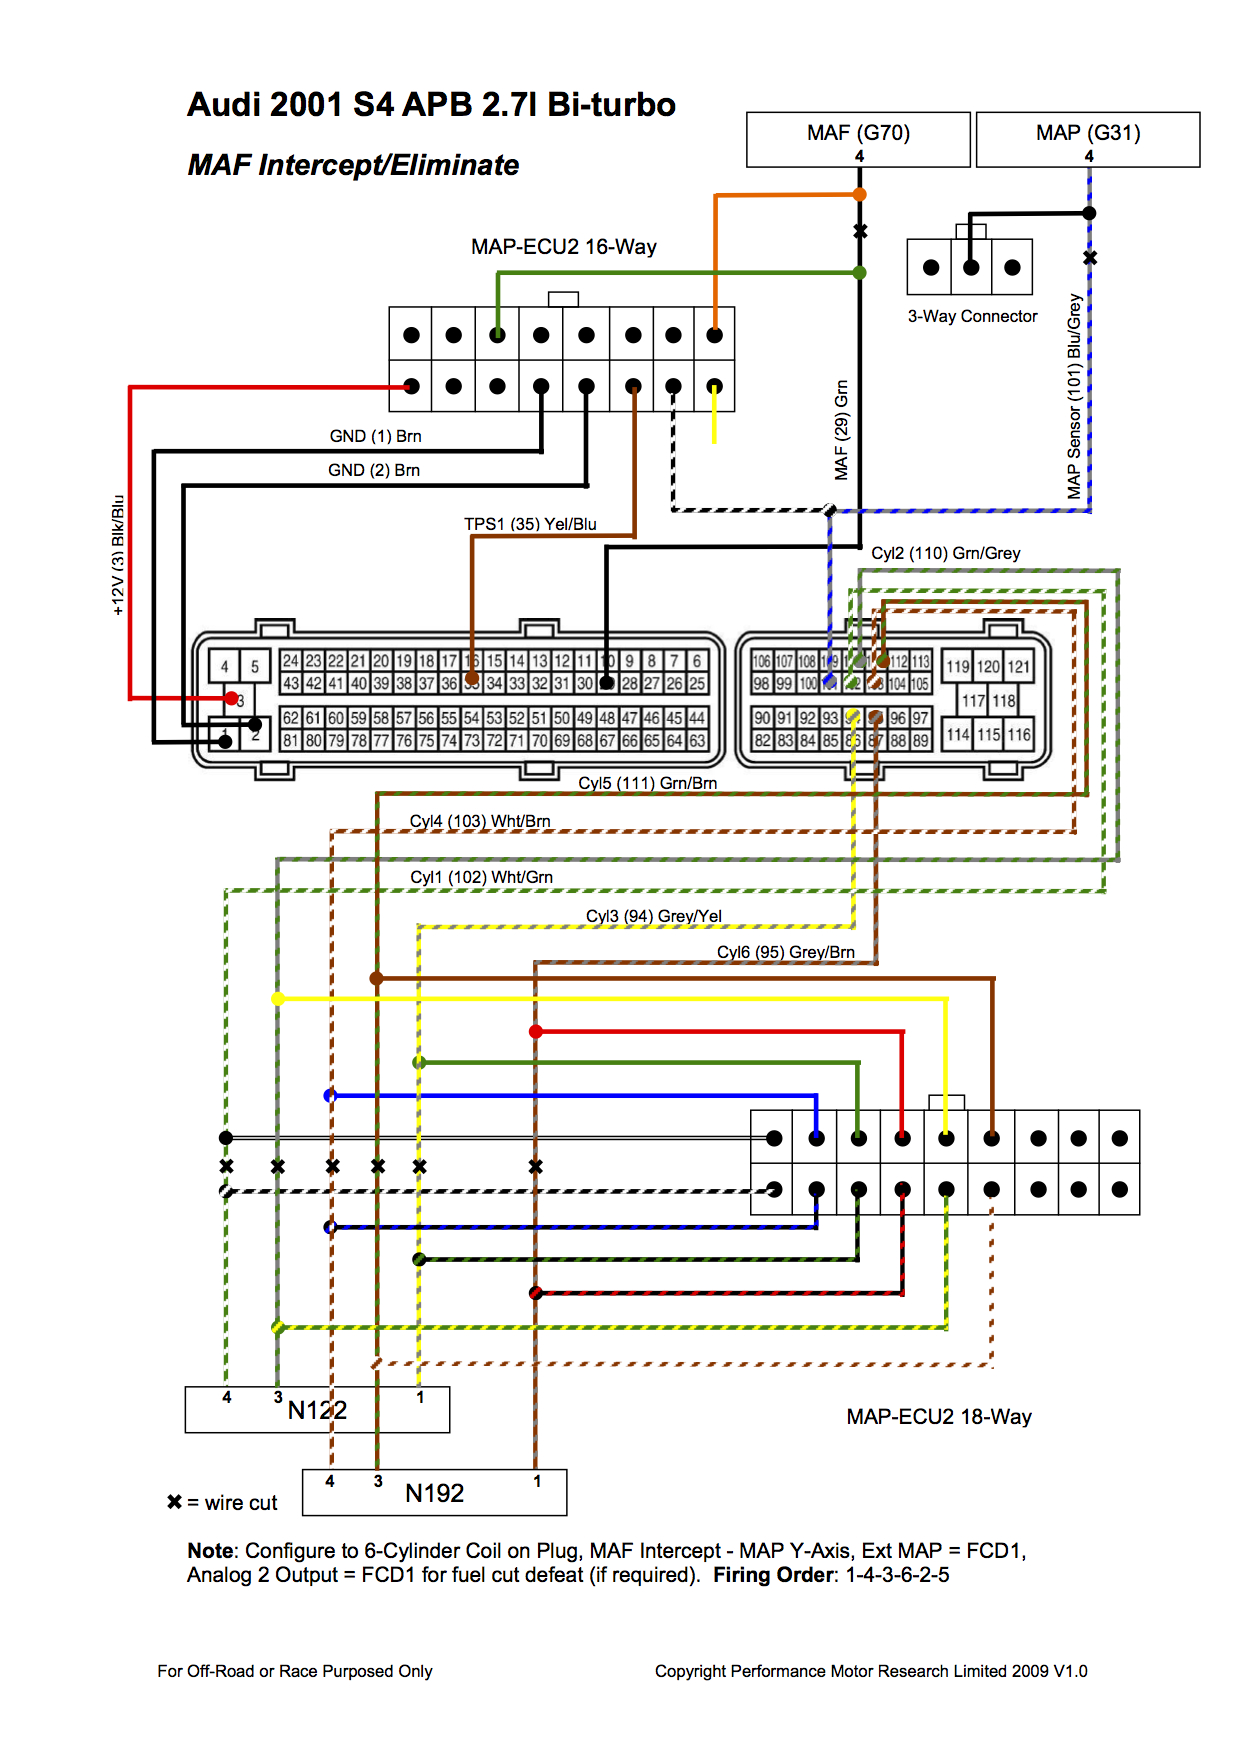 Audi S4 20011 ecu wiring diagram paccar ecu wiring diagram \u2022 wiring diagrams j 2005 Toyota Corolla EFI Wiring Diagram at bayanpartner.co